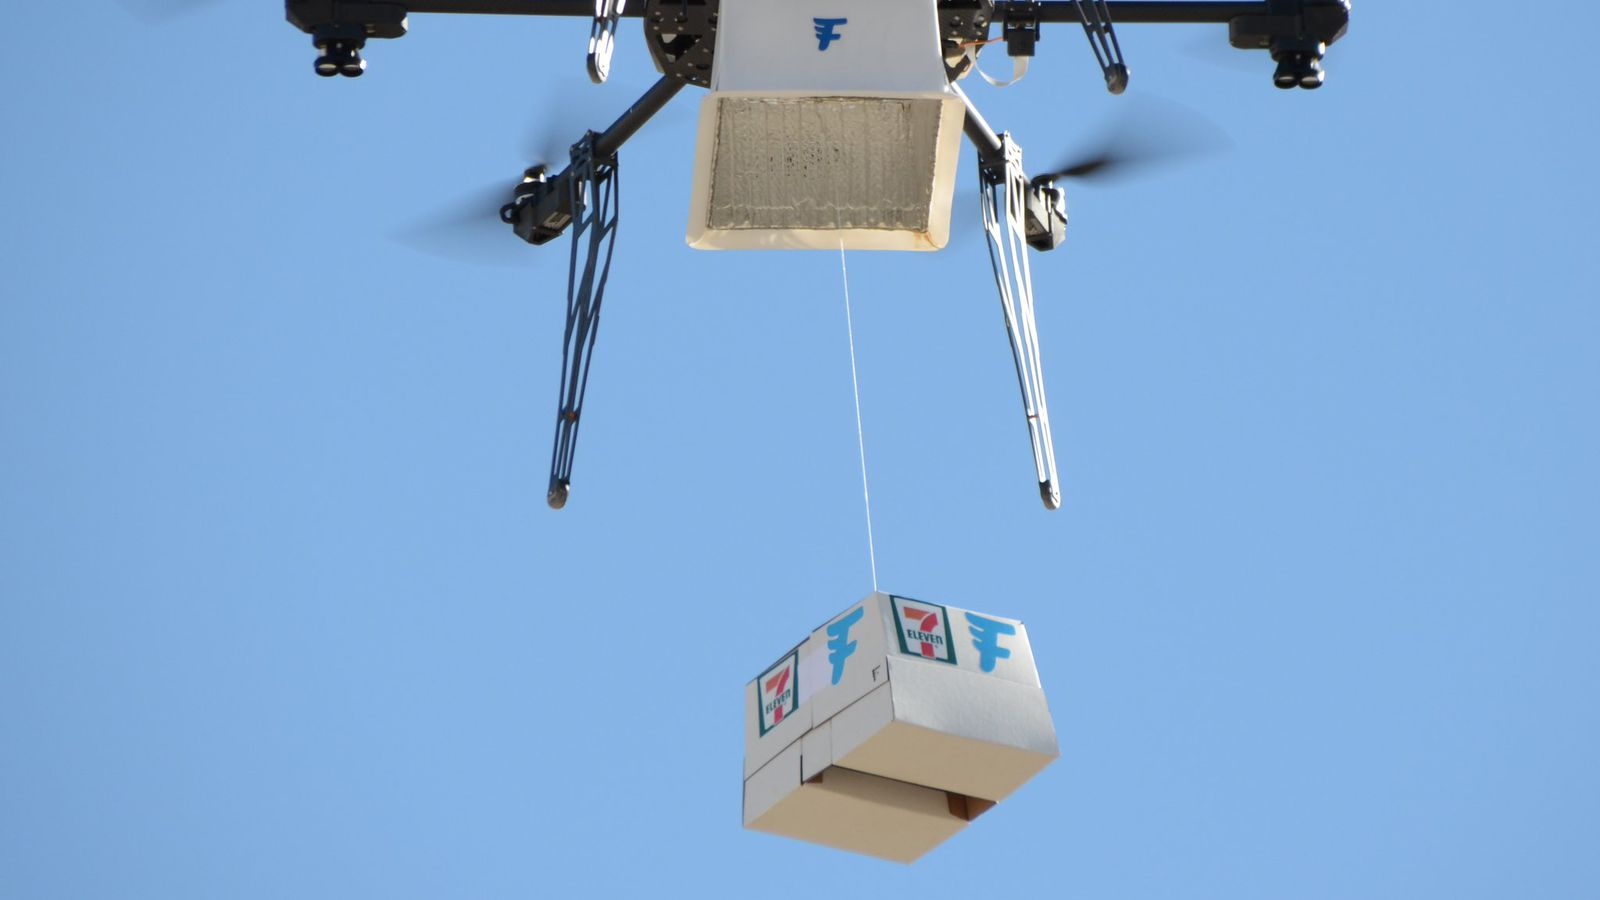 7 Eleven Just Made The First Commercial Delivery By Drone